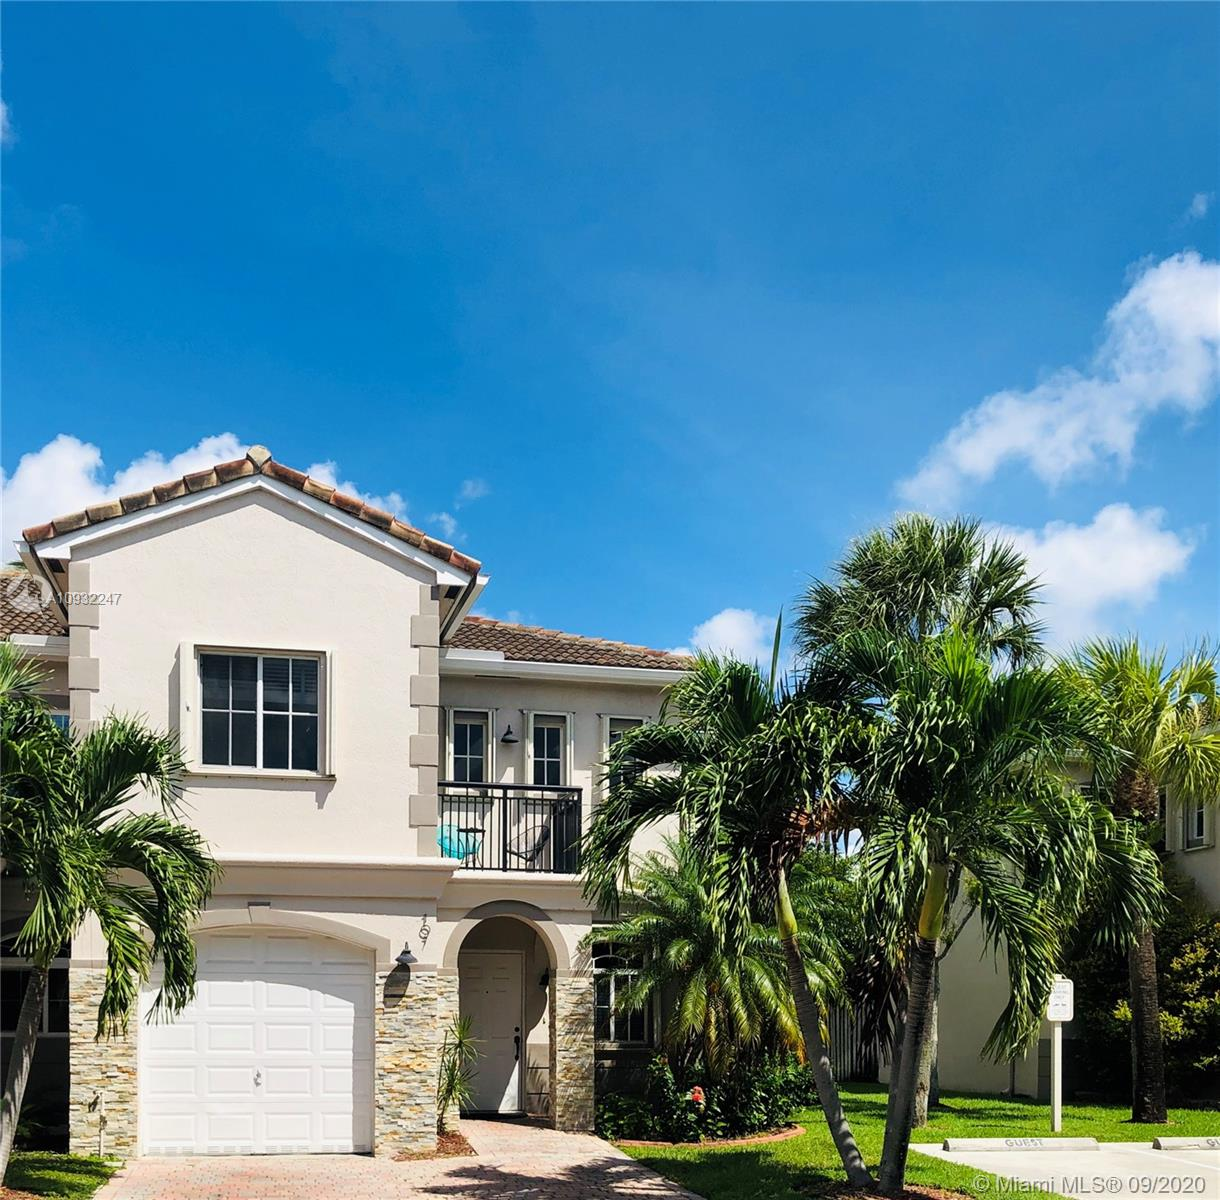 8301 SW 124th Ave #107 For Sale A10932247, FL